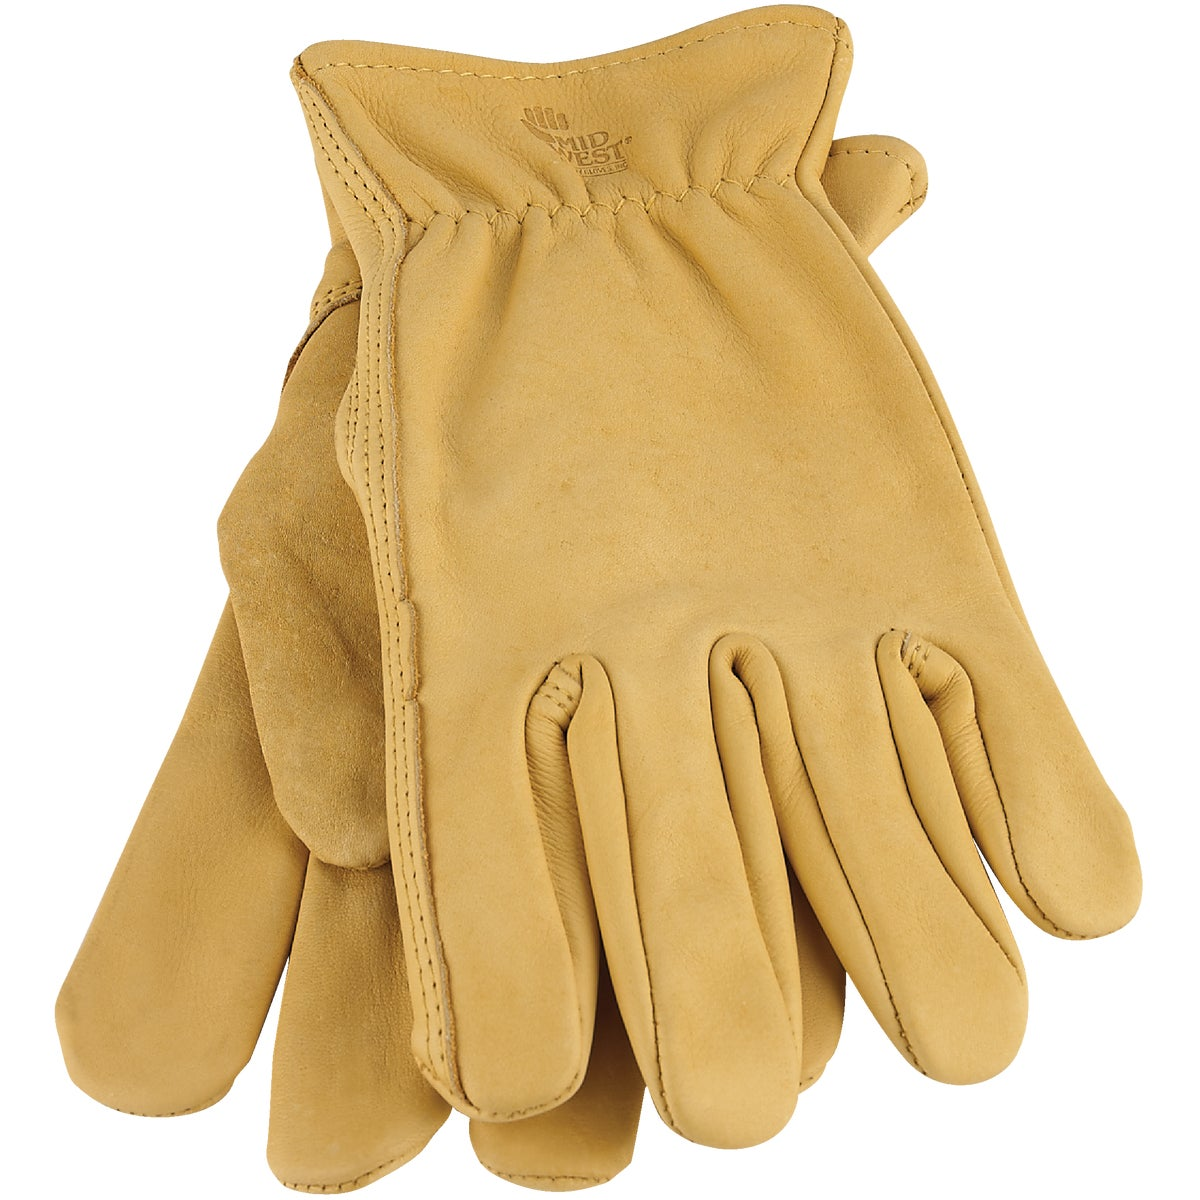 LRG LEATHER GLOVE